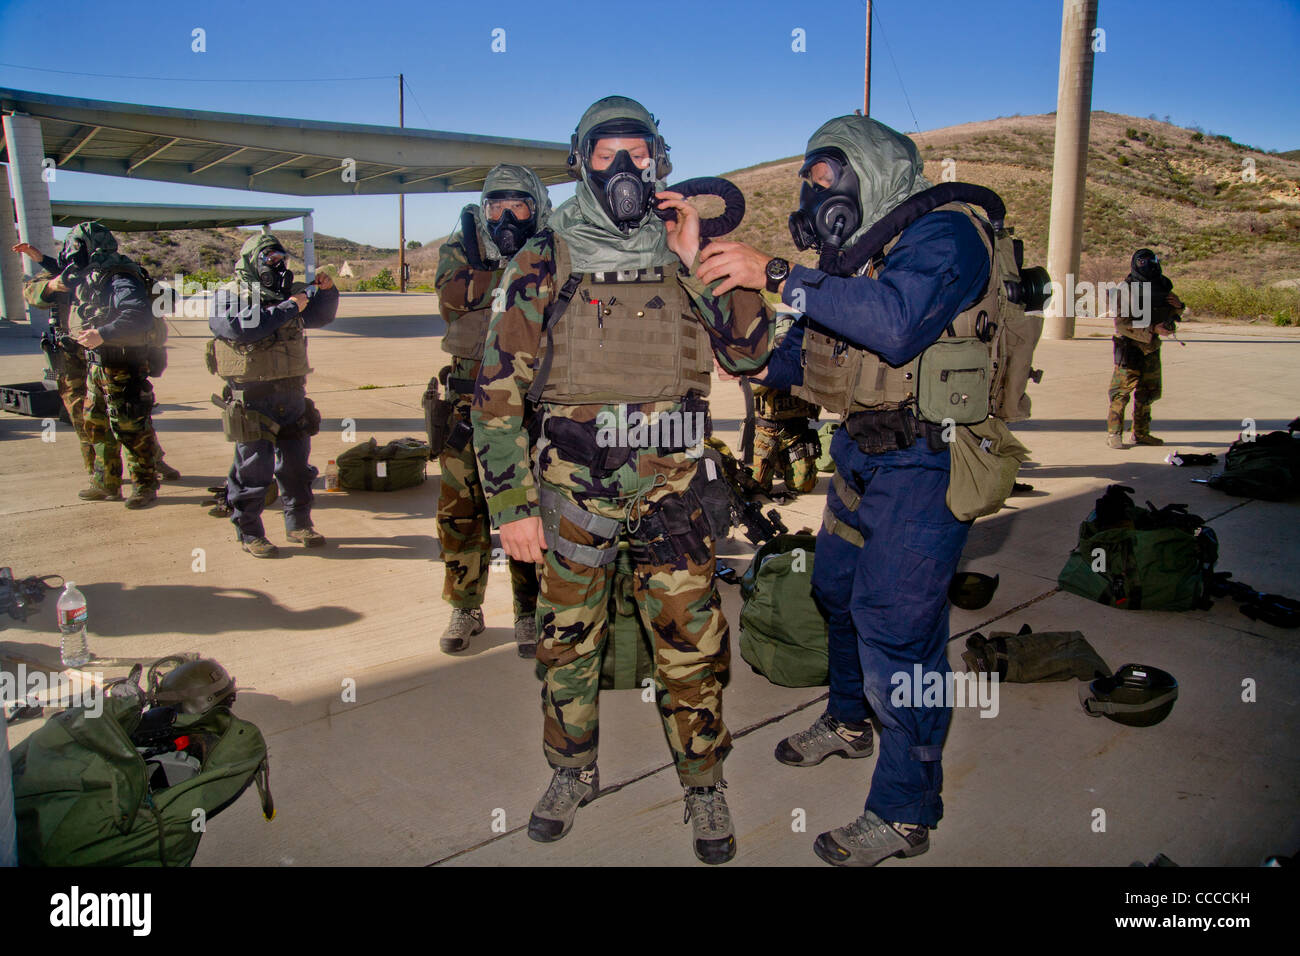 FBI SWAT (Special Weapons and Tactics) team members wear ...